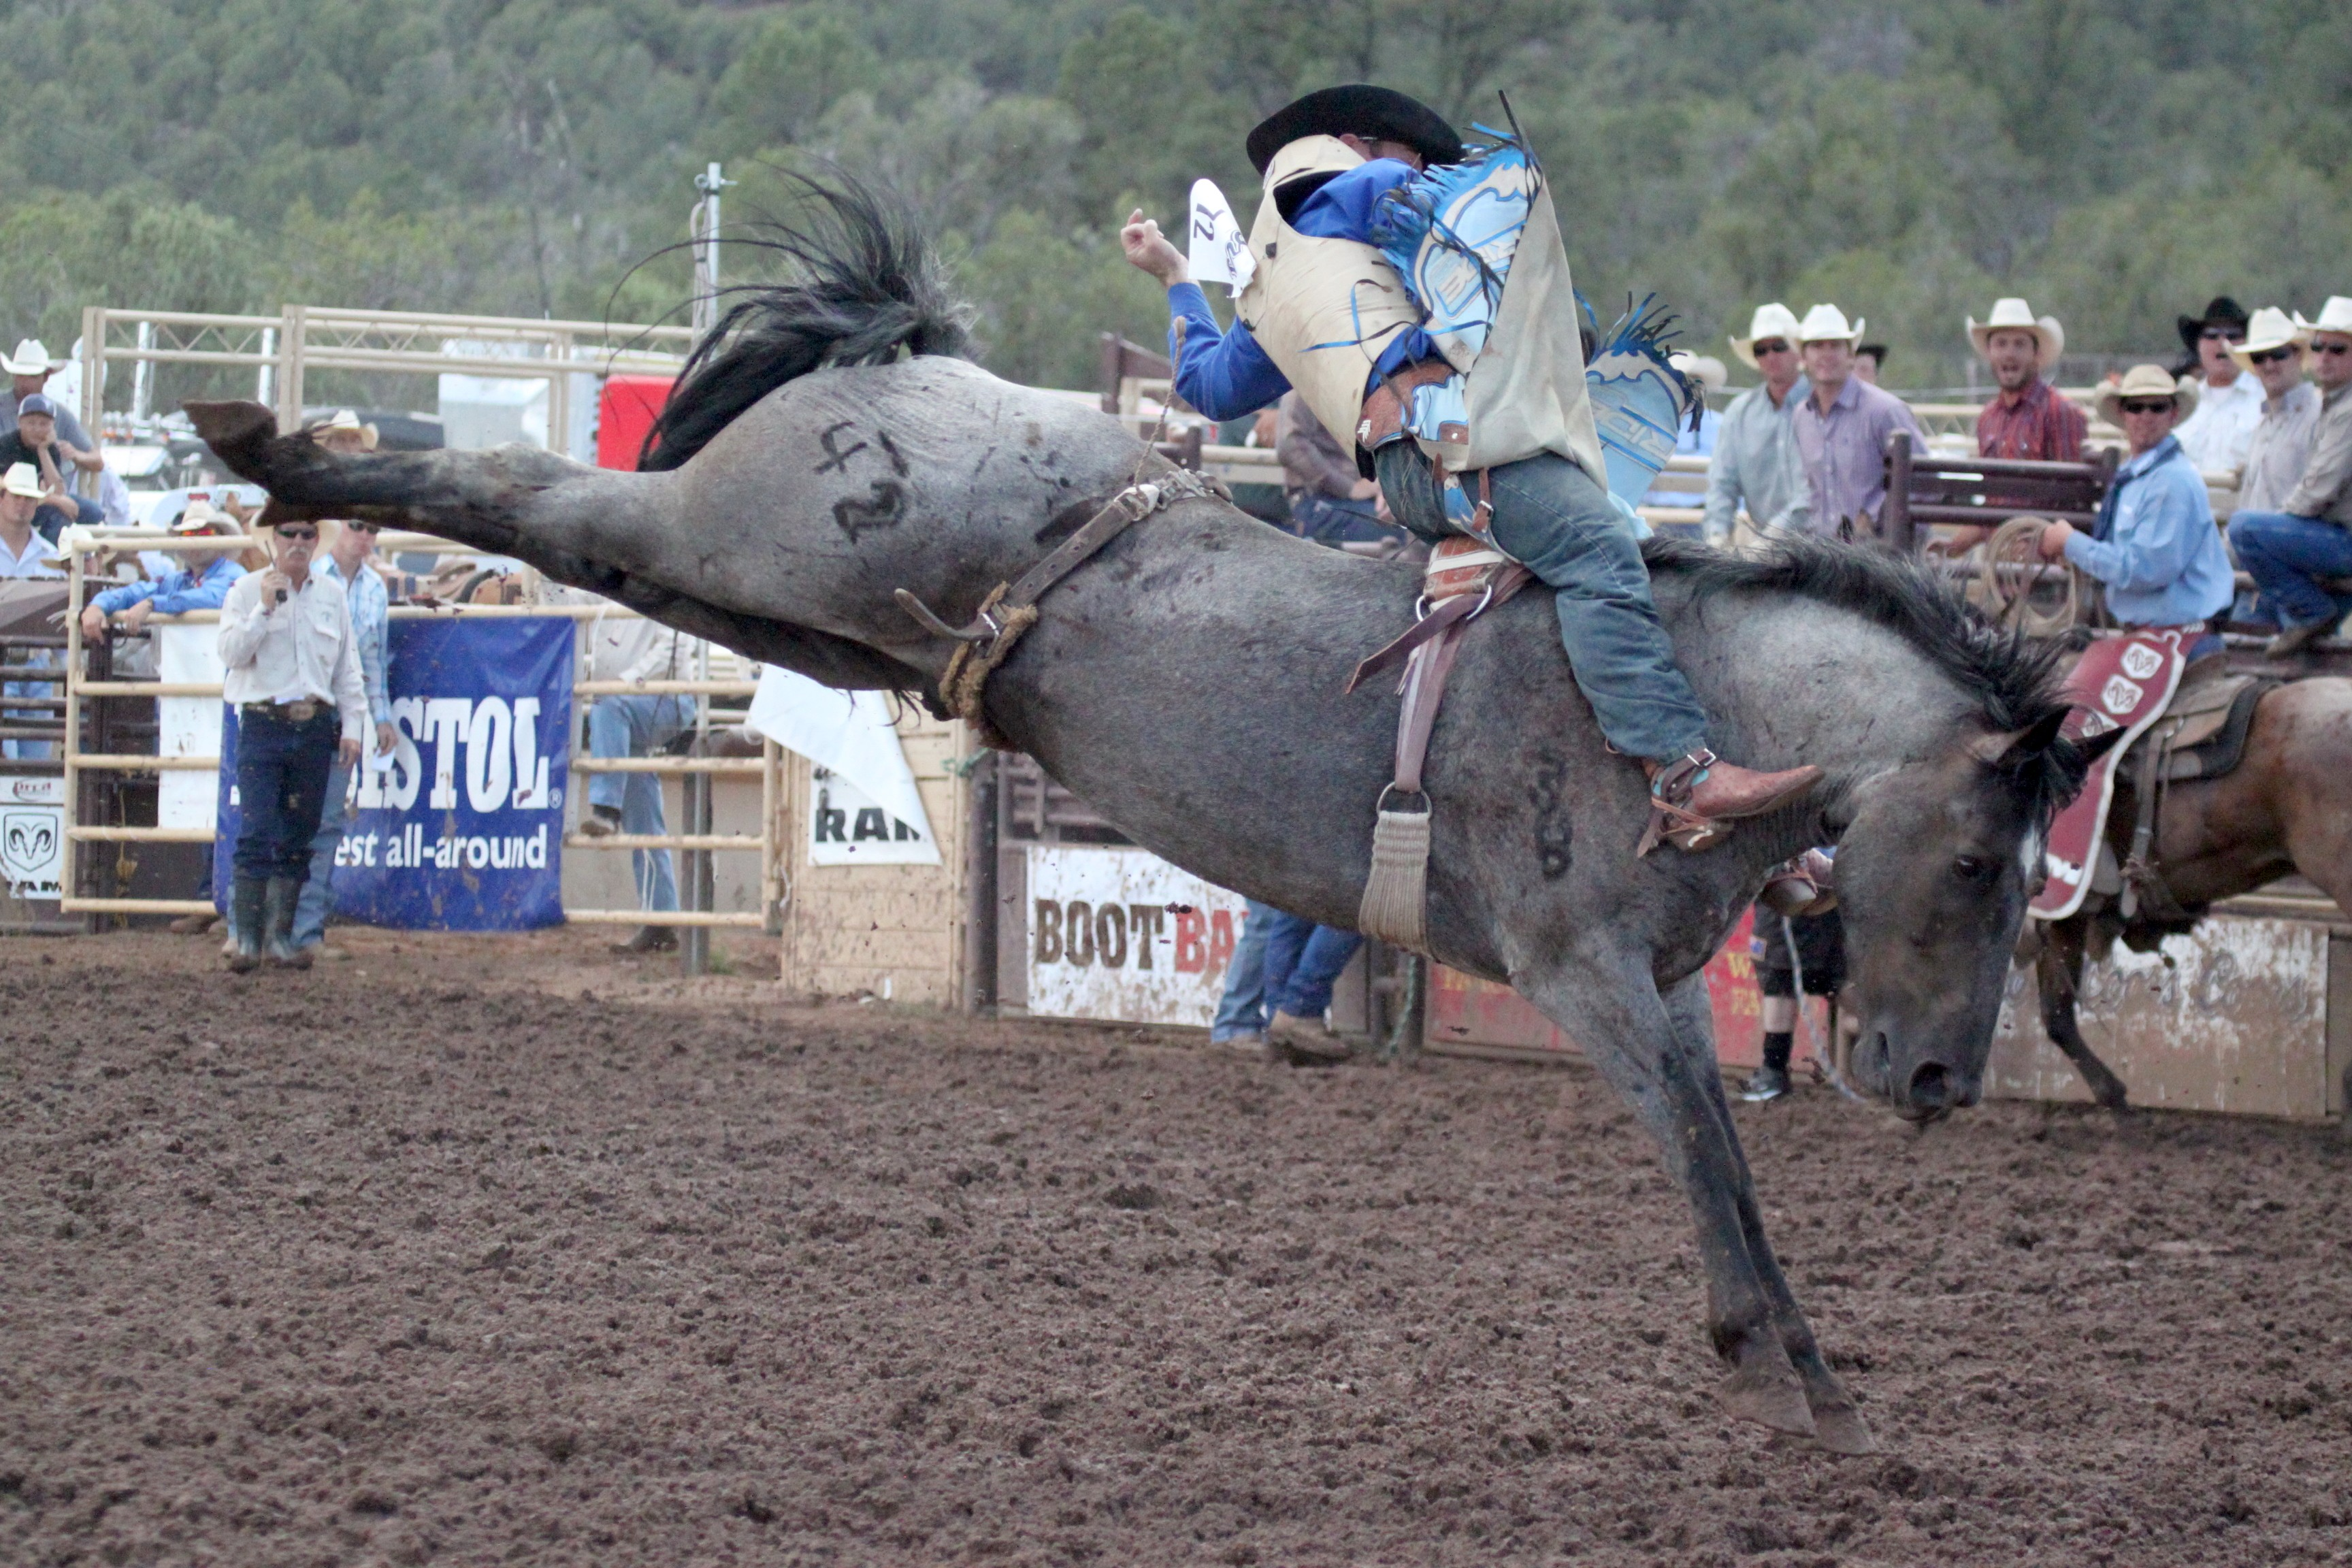 Payson_Rodeo_20014.JPG